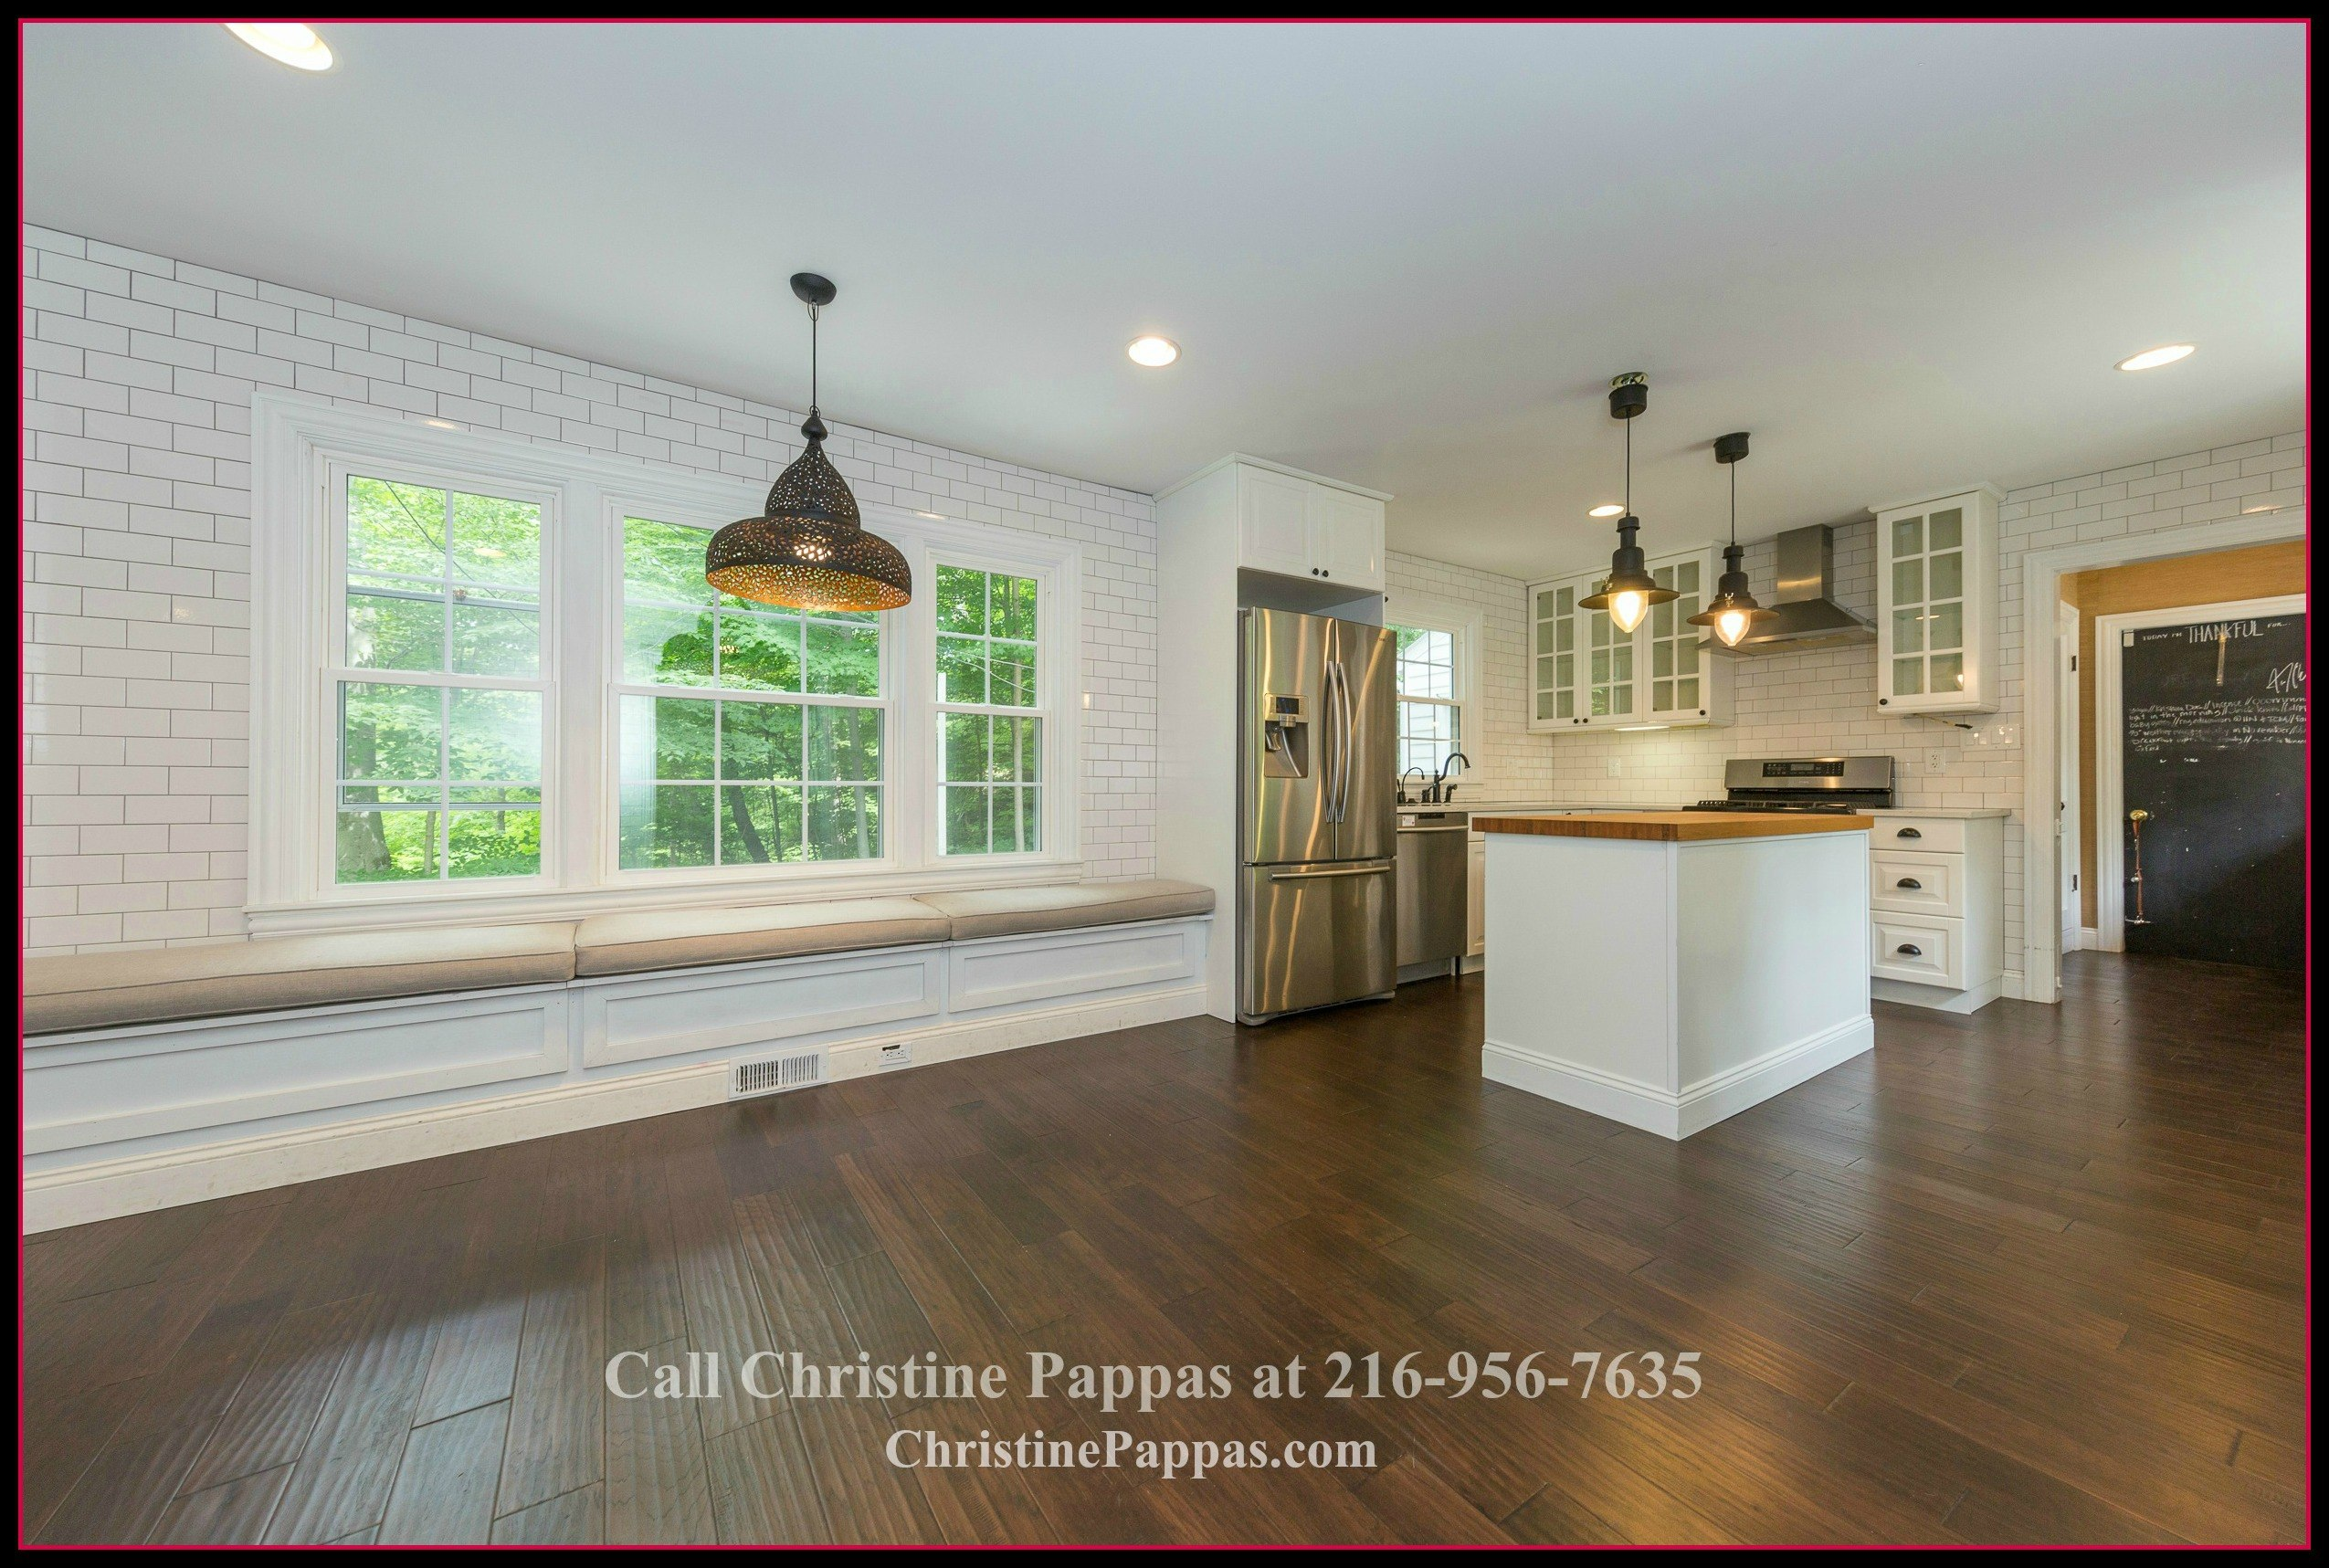 You will surely enjoy every sumptuous meal served in the dining area of this lovely home for sale in Gates Mills OH.